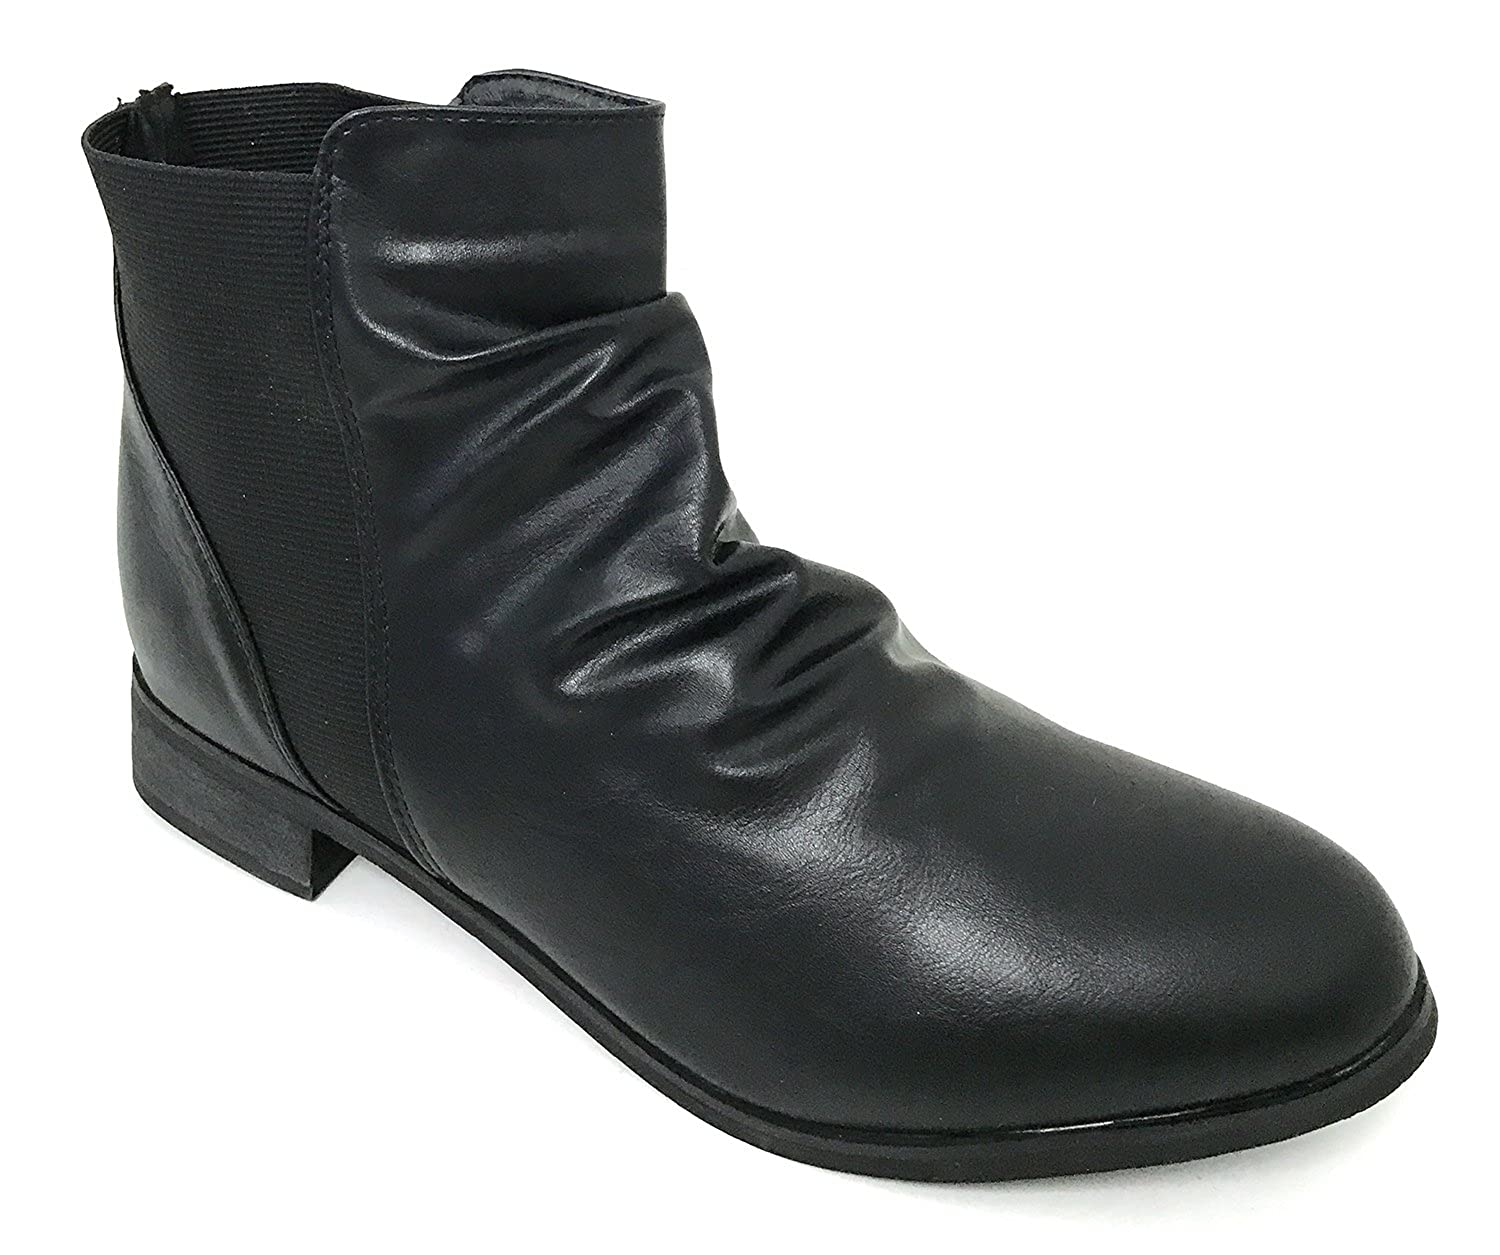 G4U-SC B618S Womens Boots Faux Leather Elastic Side Gores Ankle Slouchy Western Shoes Black